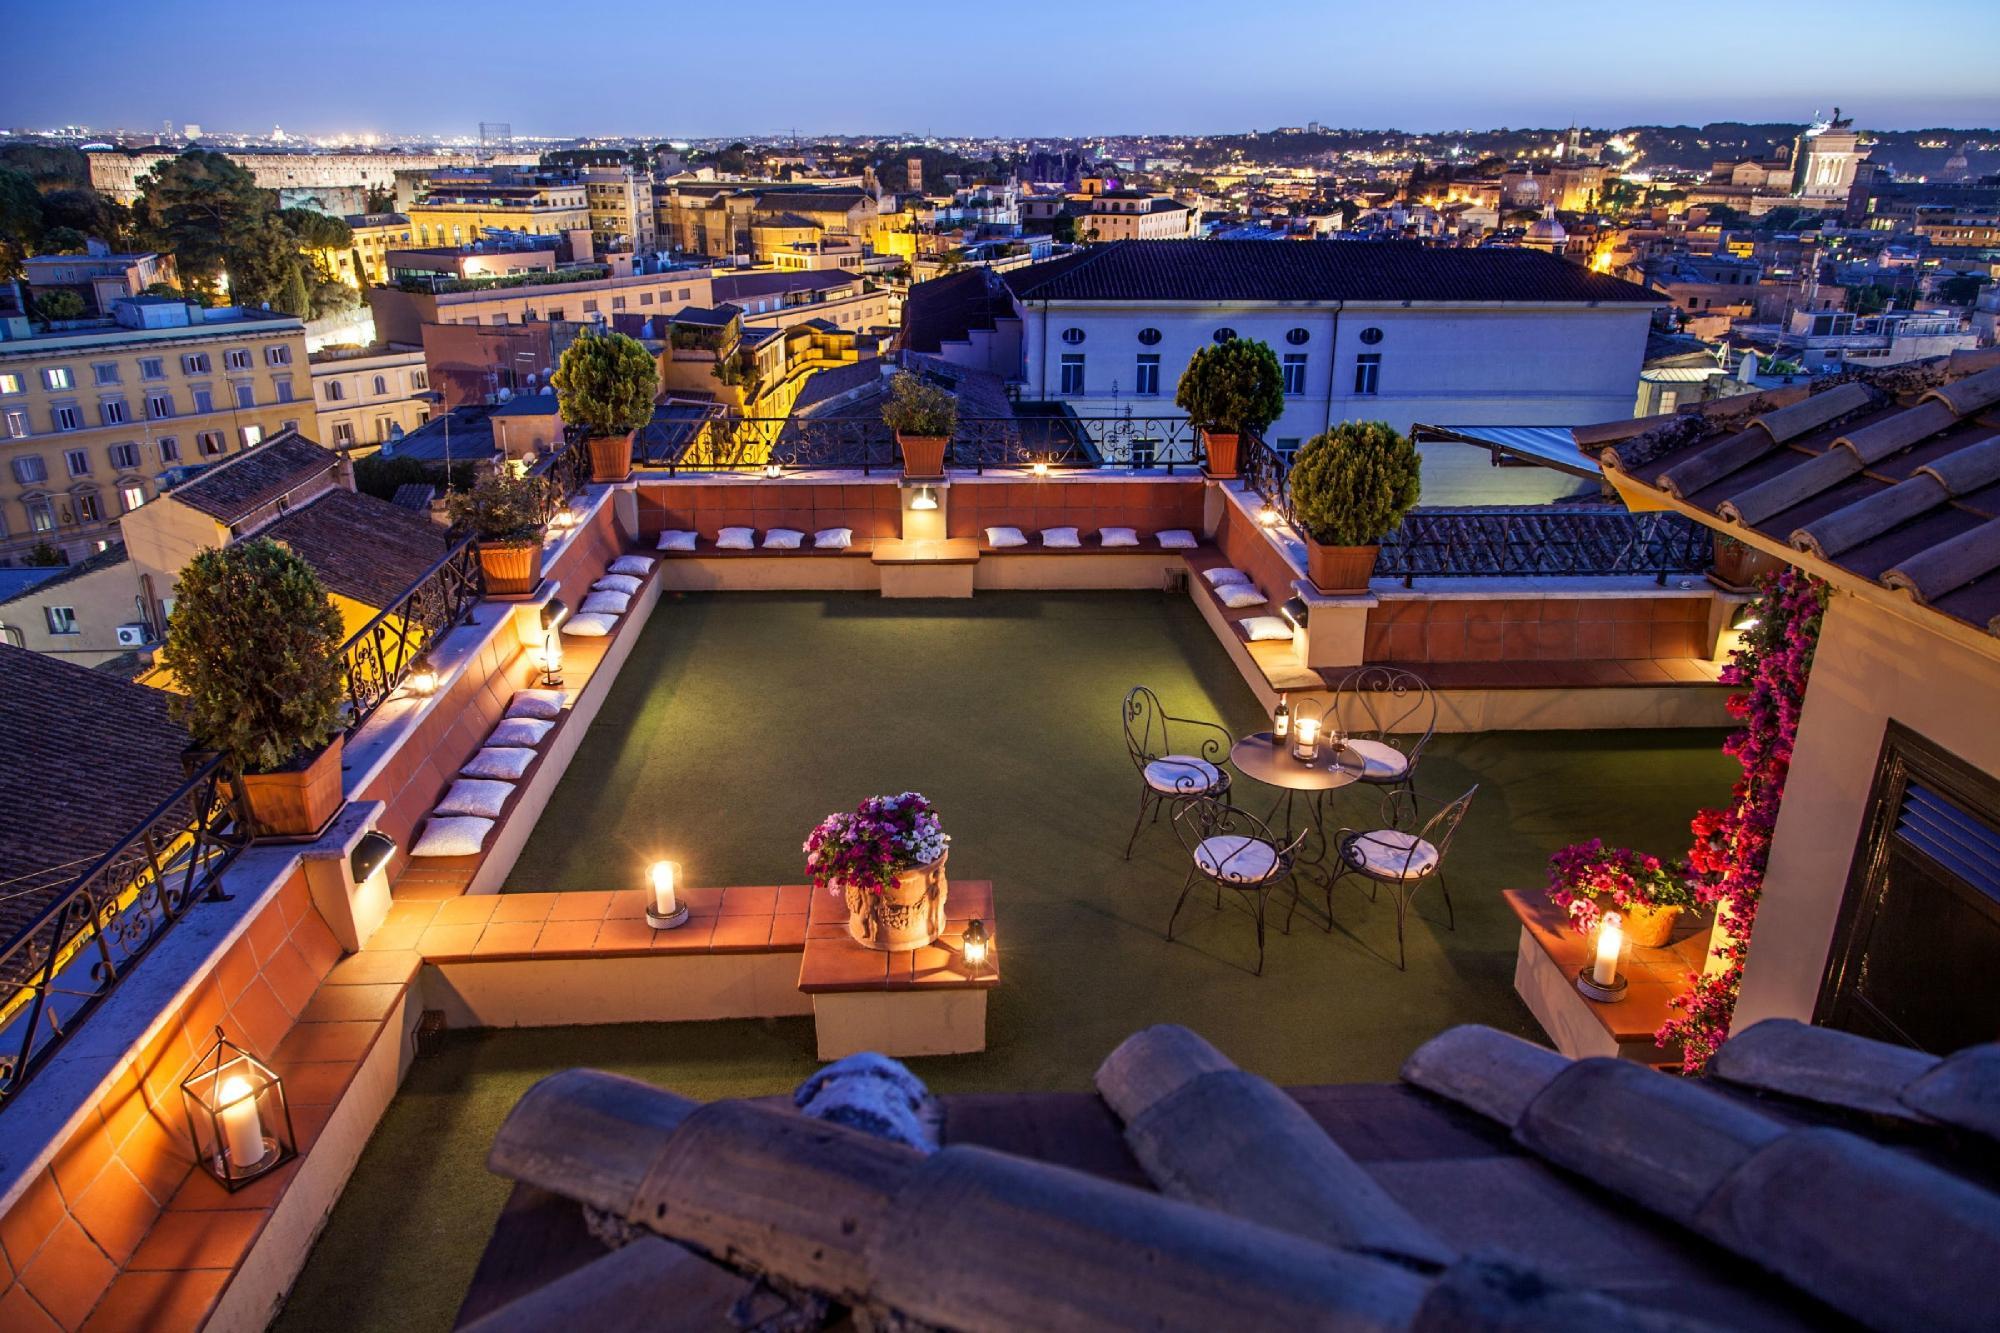 Hotel Colosseum Save Up To 126 2017 Prices Reviews Rome